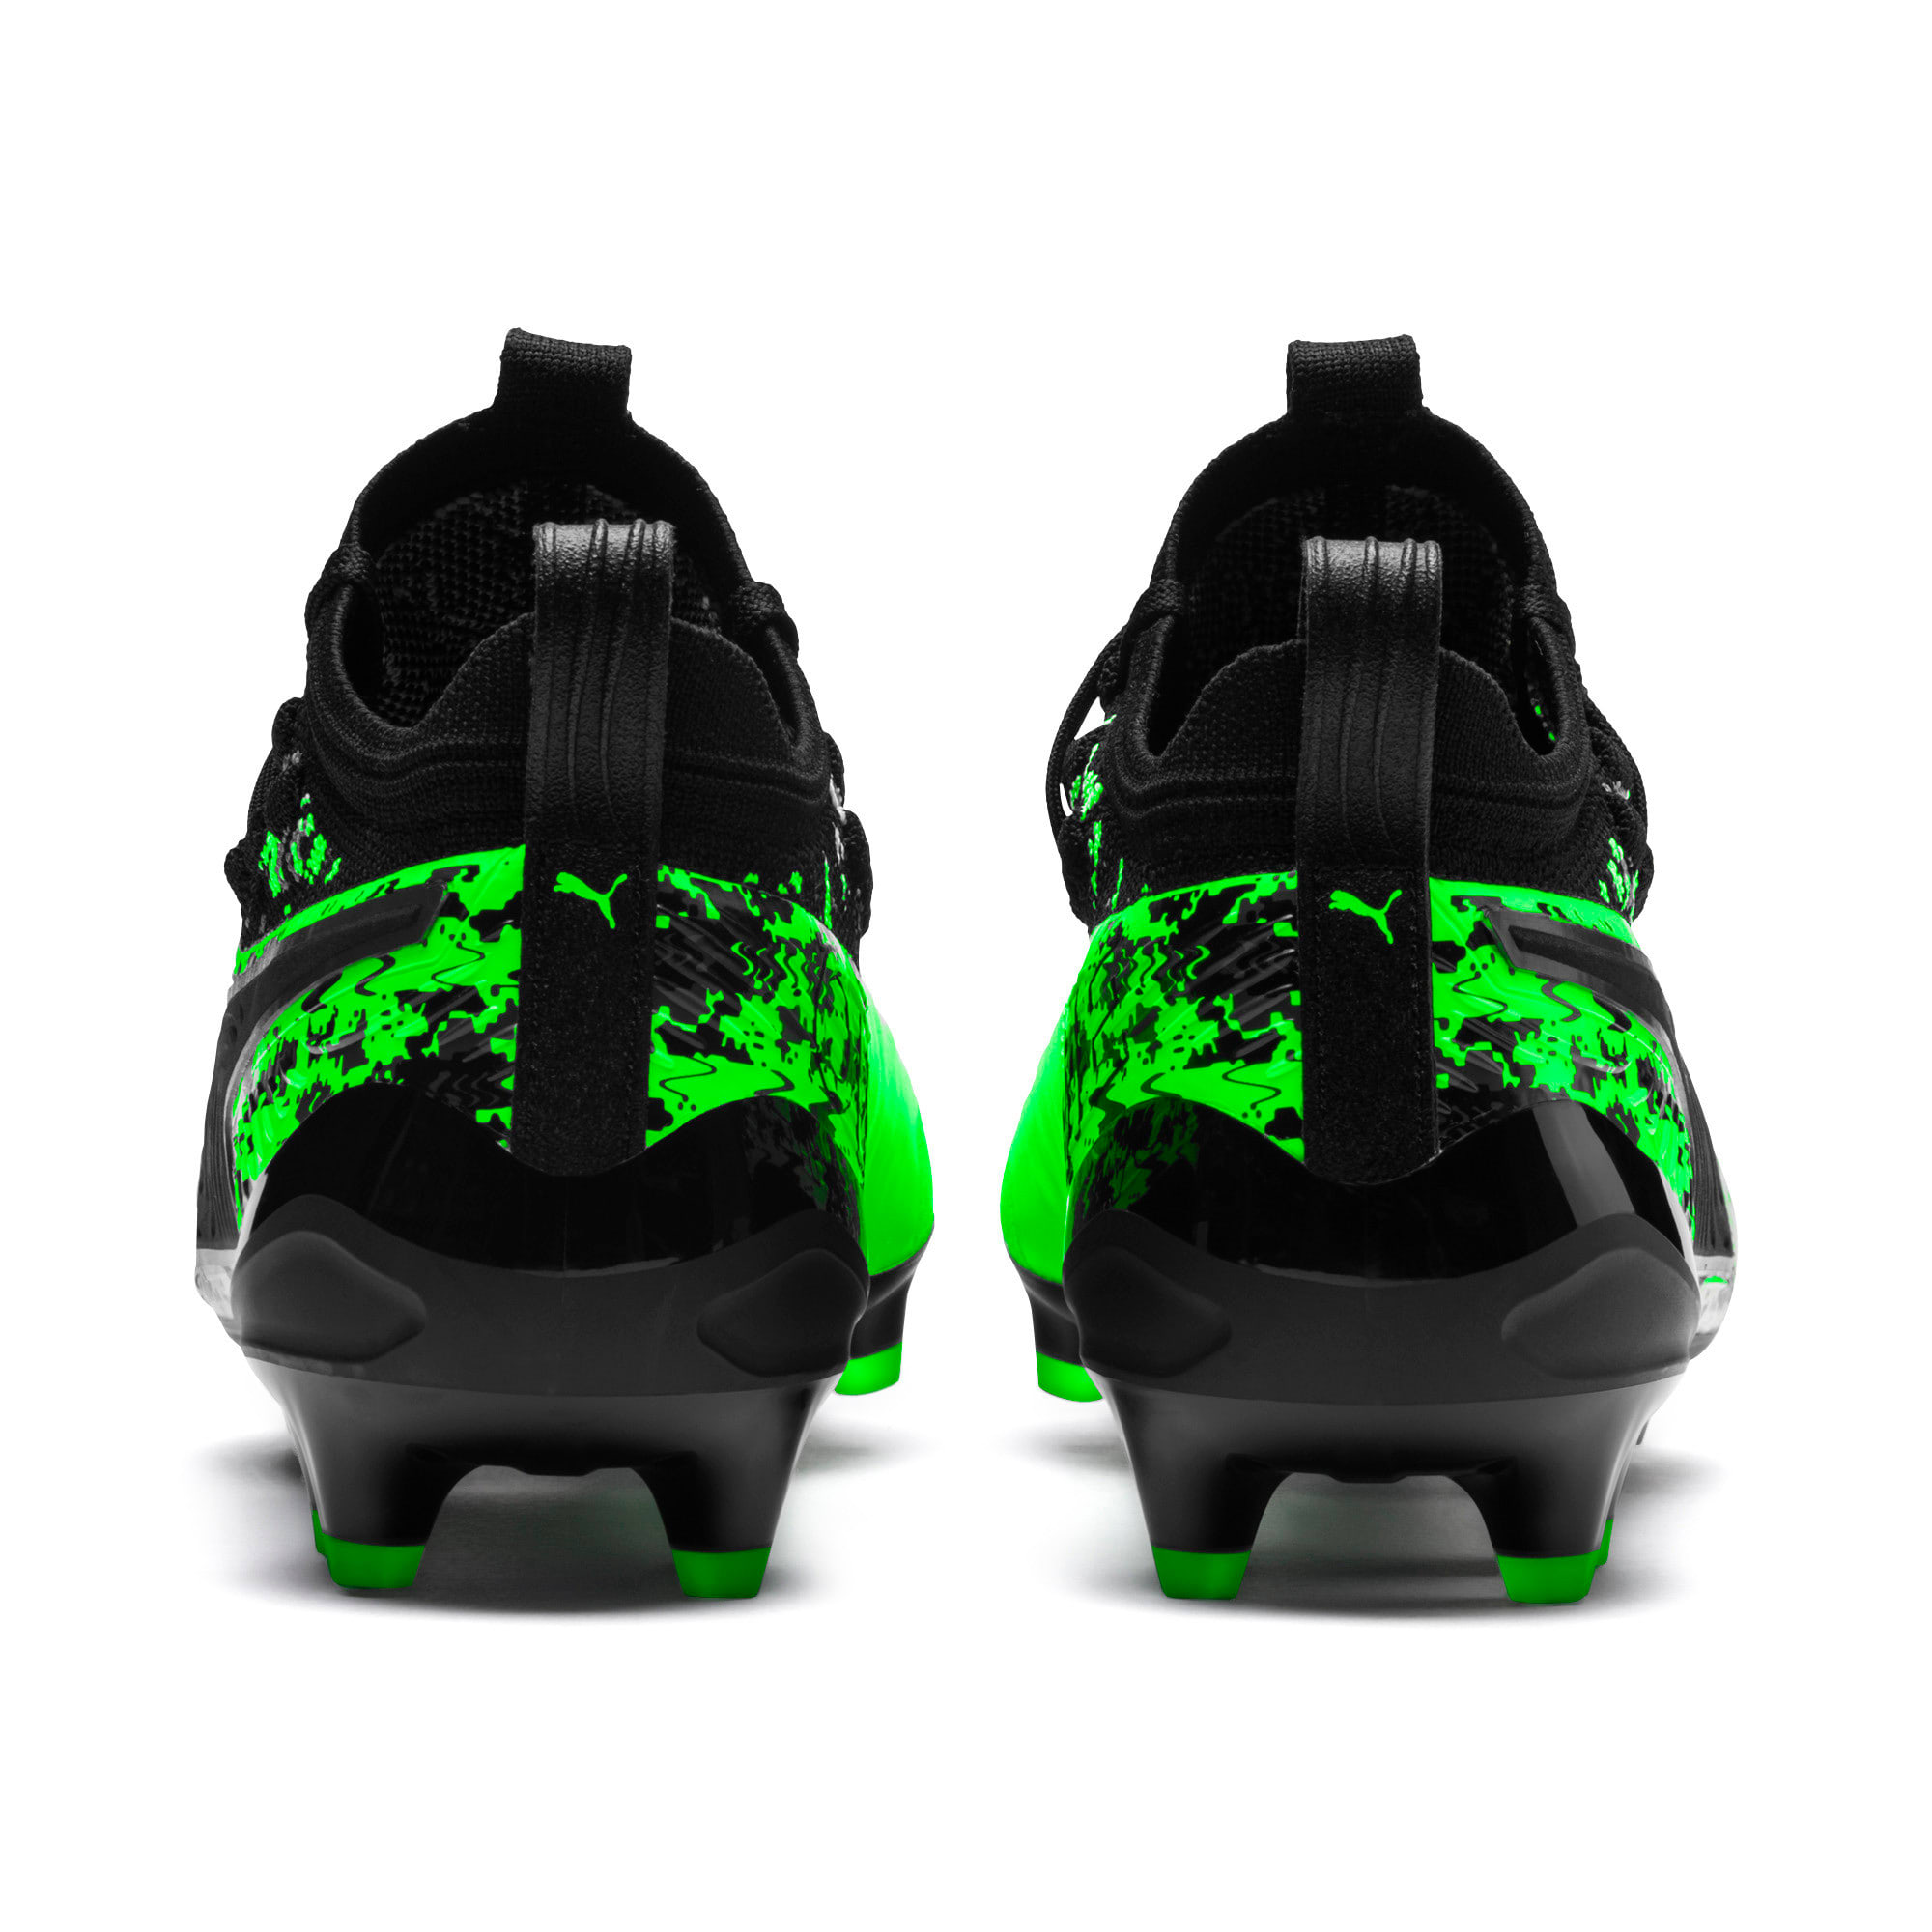 PUMA ONE 19.1 evoKNIT FG/AG Men's Football Boots, Green Gecko-Black-Gray, large